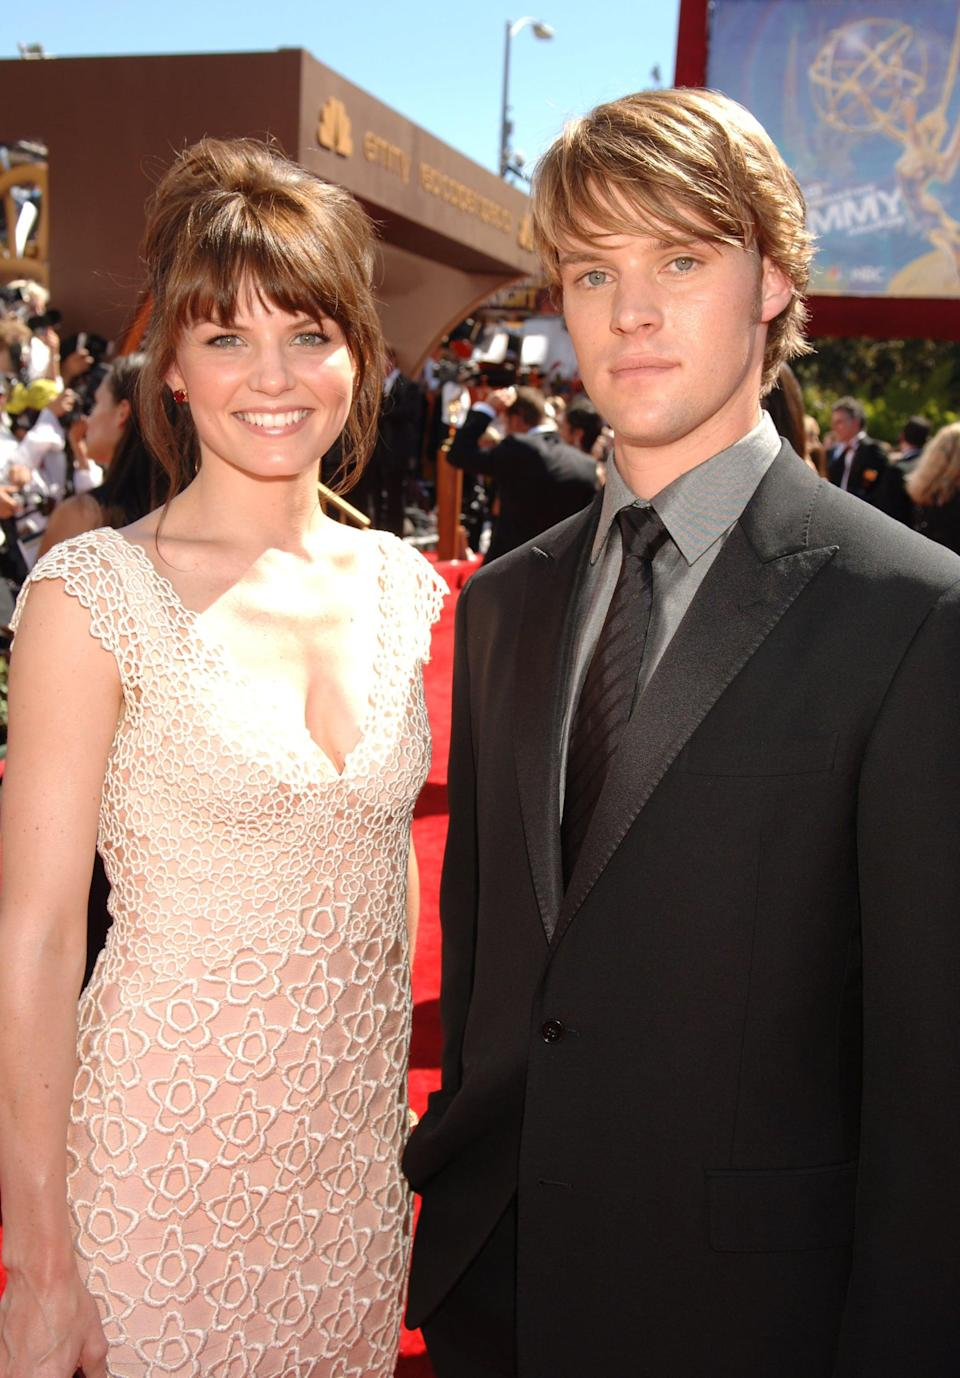 "<p>Jennifer and Jesse met on the set of <strong>House </strong>in 2004, and it wasn't long before they struck up a romance. They went on to date for three years - and even got engaged - before deciding to split, and their onscreen characters, Allison and Robert, ended up divorcing before Jennifer left the series in 2010.</p> <p>Following their split, <a href=""http://people.com/celebrity/house-costars-call-off-engagement/"" class=""link rapid-noclick-resp"" rel=""nofollow noopener"" target=""_blank"" data-ylk=""slk:the exes released a statement"">the exes released a statement</a> to <strong>People</strong> just months before they were due to get married. ""After much consideration, we have decided not to get married,'' they wrote. ""We are still very close, and we look forward to continuing to work together on <strong>House</strong>.''</p> <p>Since then, the two haven't explicitly discussed the end of their relationship, but Jesse told <strong>Time Out</strong> in October 2012 that <a href=""http://www.timeout.com/chicago/tv/jesse-spencer-interview"" class=""link rapid-noclick-resp"" rel=""nofollow noopener"" target=""_blank"" data-ylk=""slk:he probably wouldn't date another actor"">he probably wouldn't date another actor</a>. ""All of my girlfriends have been actors, and I've realized that maybe it's not for me - and find something else outside of the industry,"" he said. <br></p>"